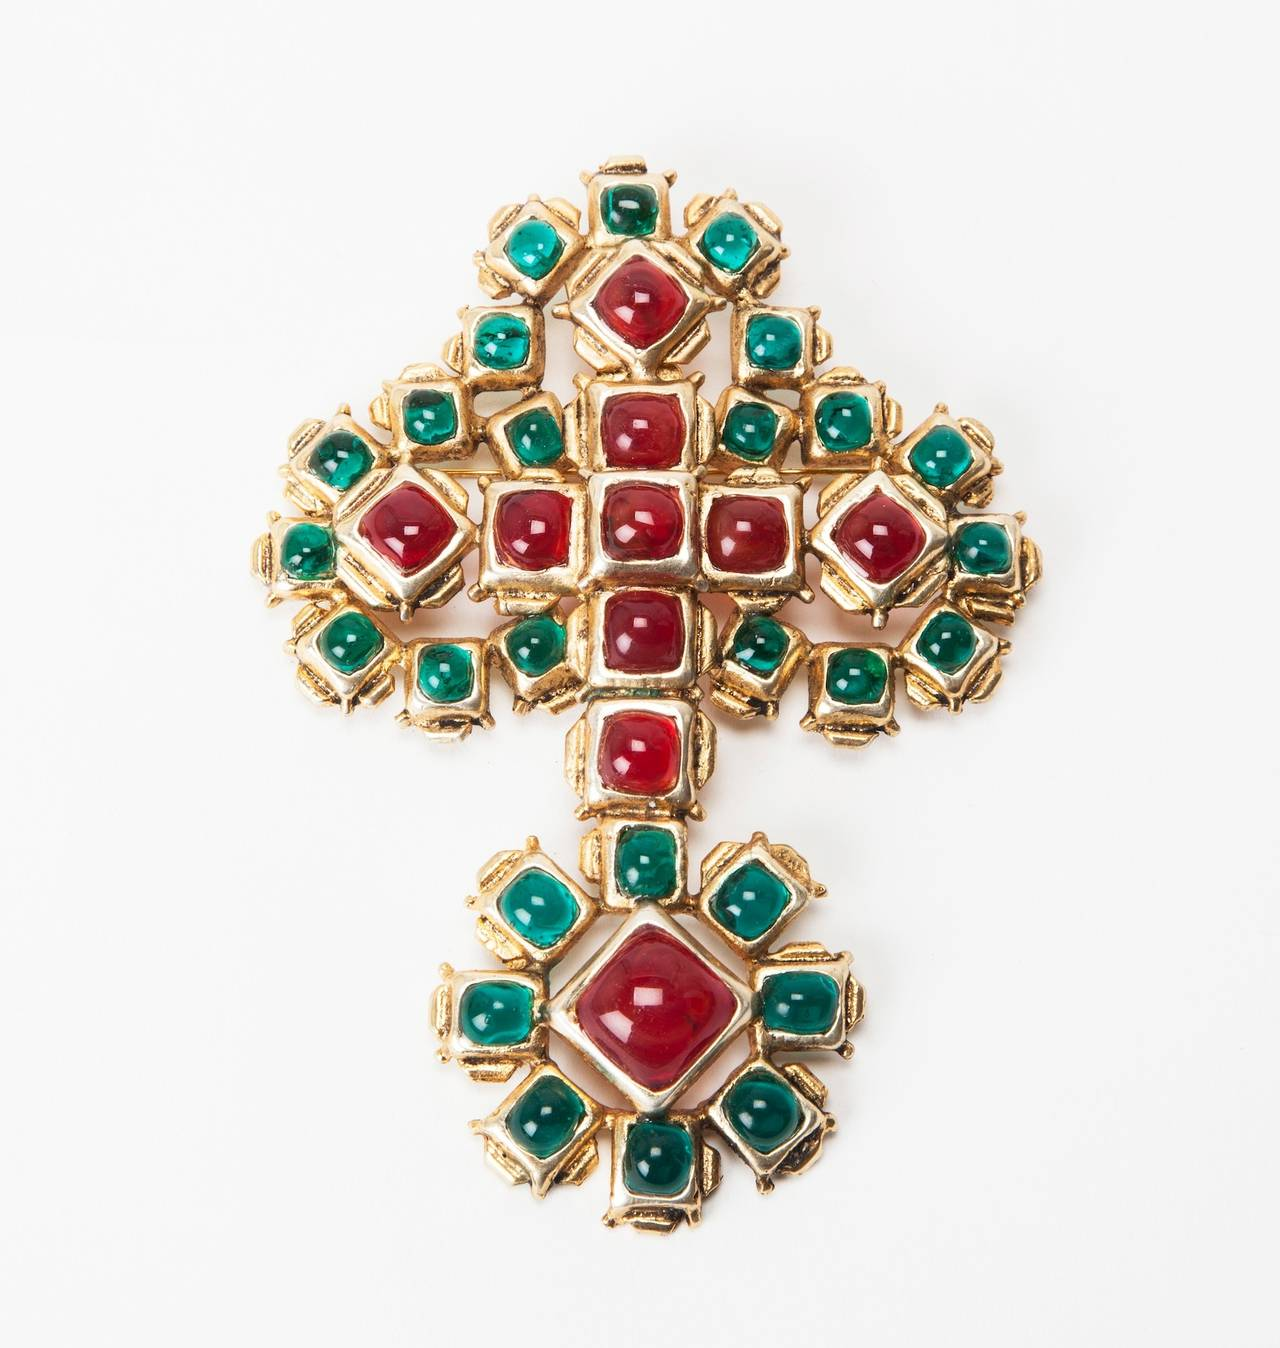 Massive Chanel Renaissance Cross Brooch/Pendant by Maison Gripoix, Paris. 